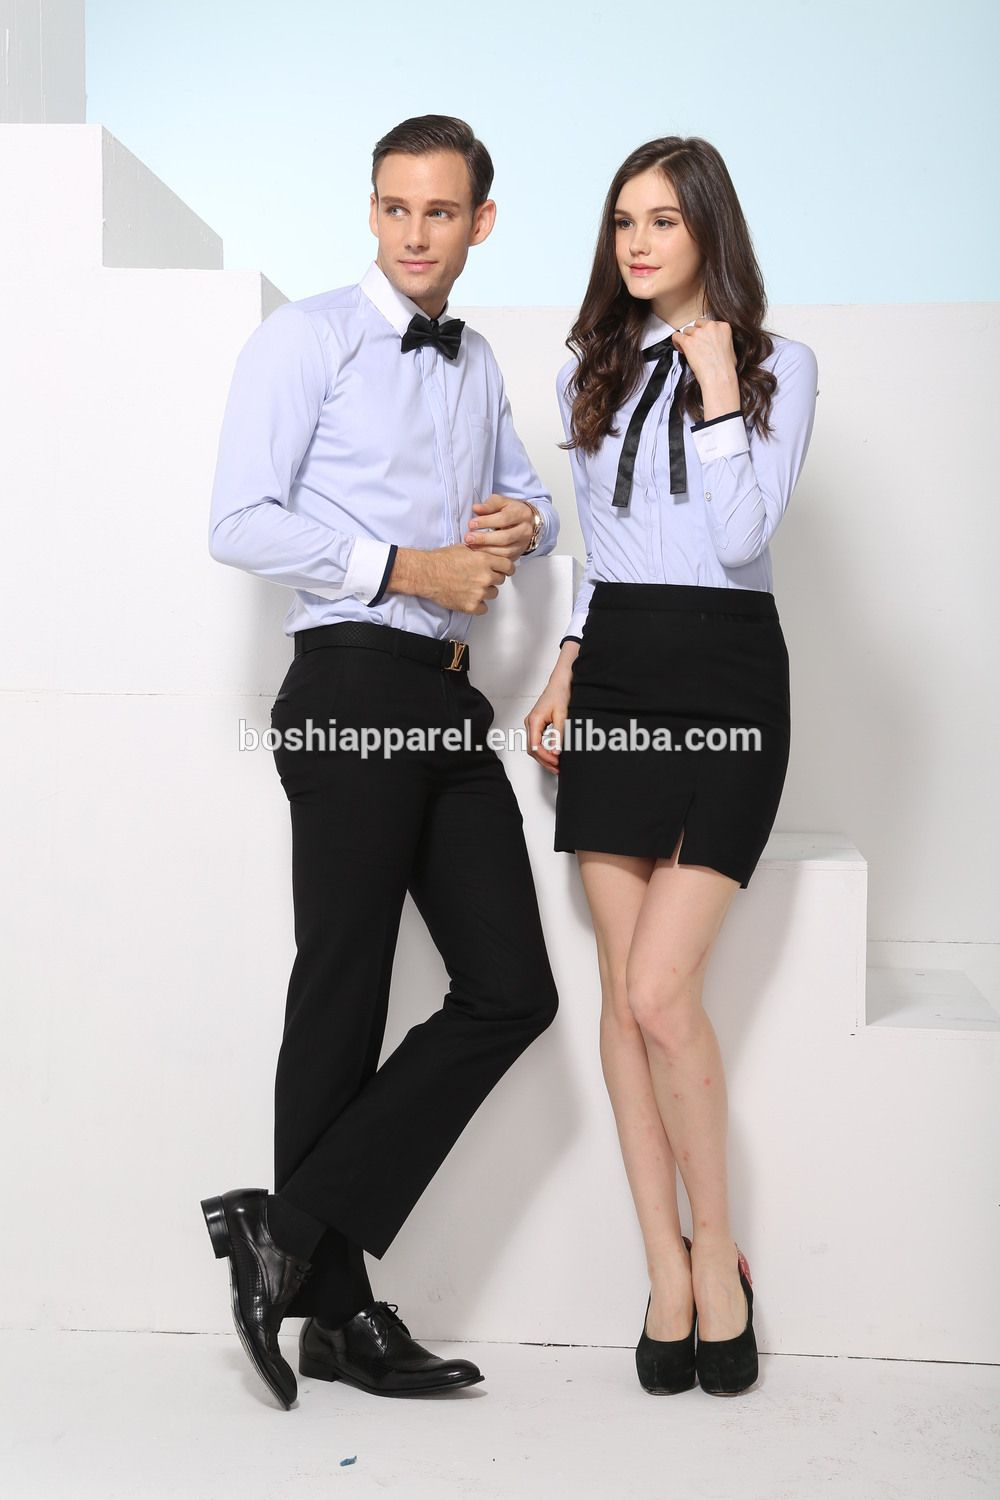 0} - Buy Product on Alibaba.com | Ladies office wear, Business ...